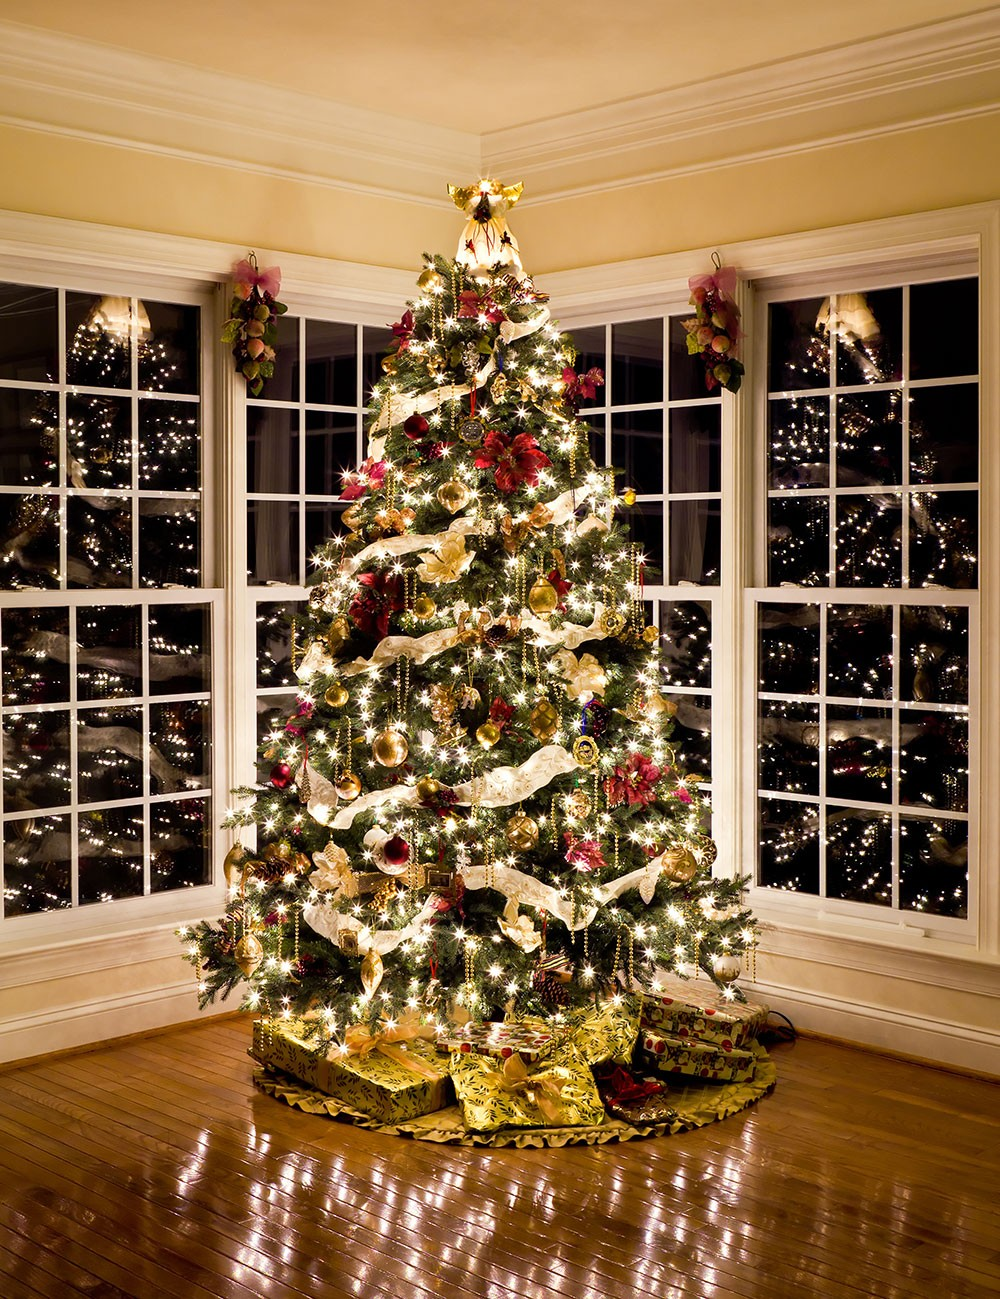 6 Mesmerizing Ways To Decor Your Christmas Tree This Holiday | Streets are already starting to shine with all of the traditional fairy lights that warm up people's hearts. #christmasdecor #christmastree #homedecor #fairylights #christmasspirit #interiordesign  6 Mesmerizing Ways To Decor Your Christmas Tree This Holiday shonna fox designer christmas trees